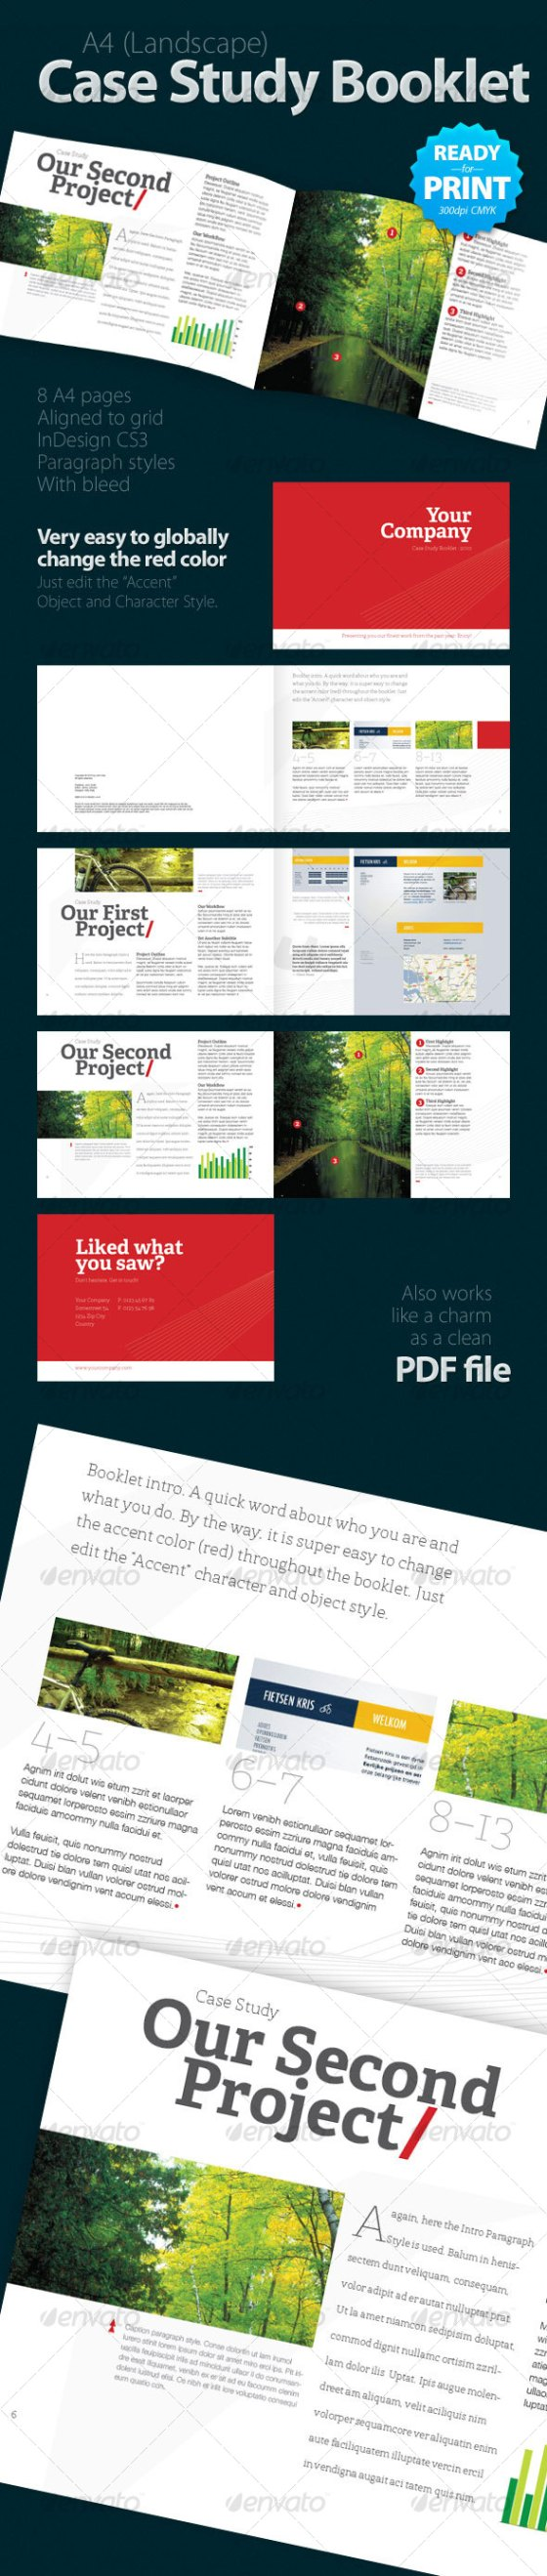 A4 case study booklet indesign